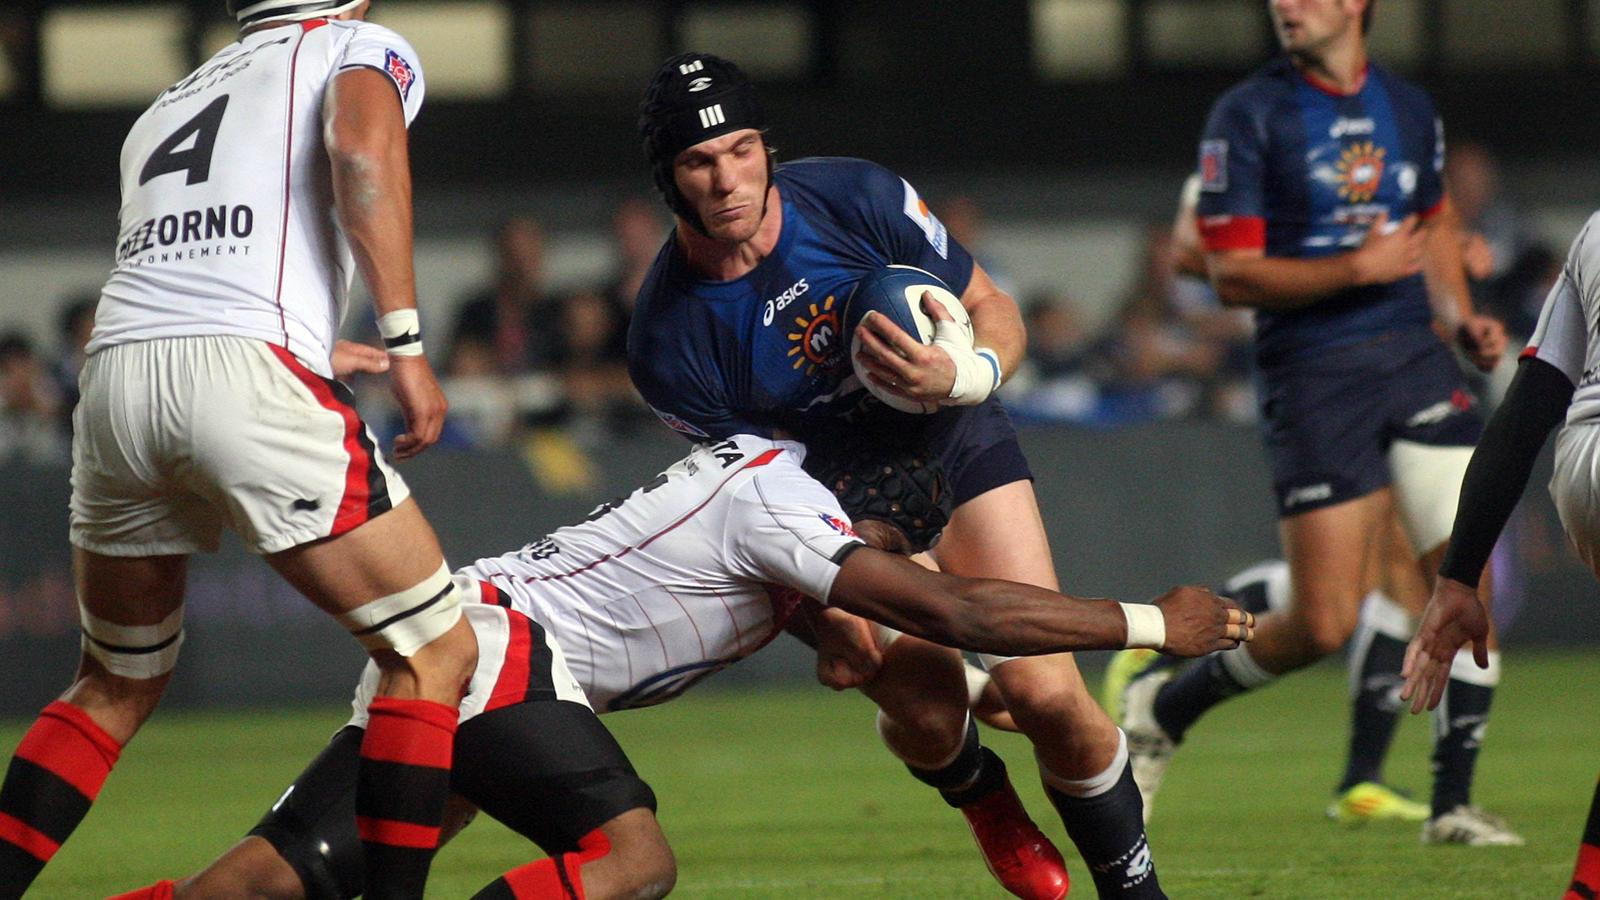 H cup calendrier d voil coupe d 39 europe 2011 2012 rugby rugbyrama - Coupe d europe de rugby calendrier ...